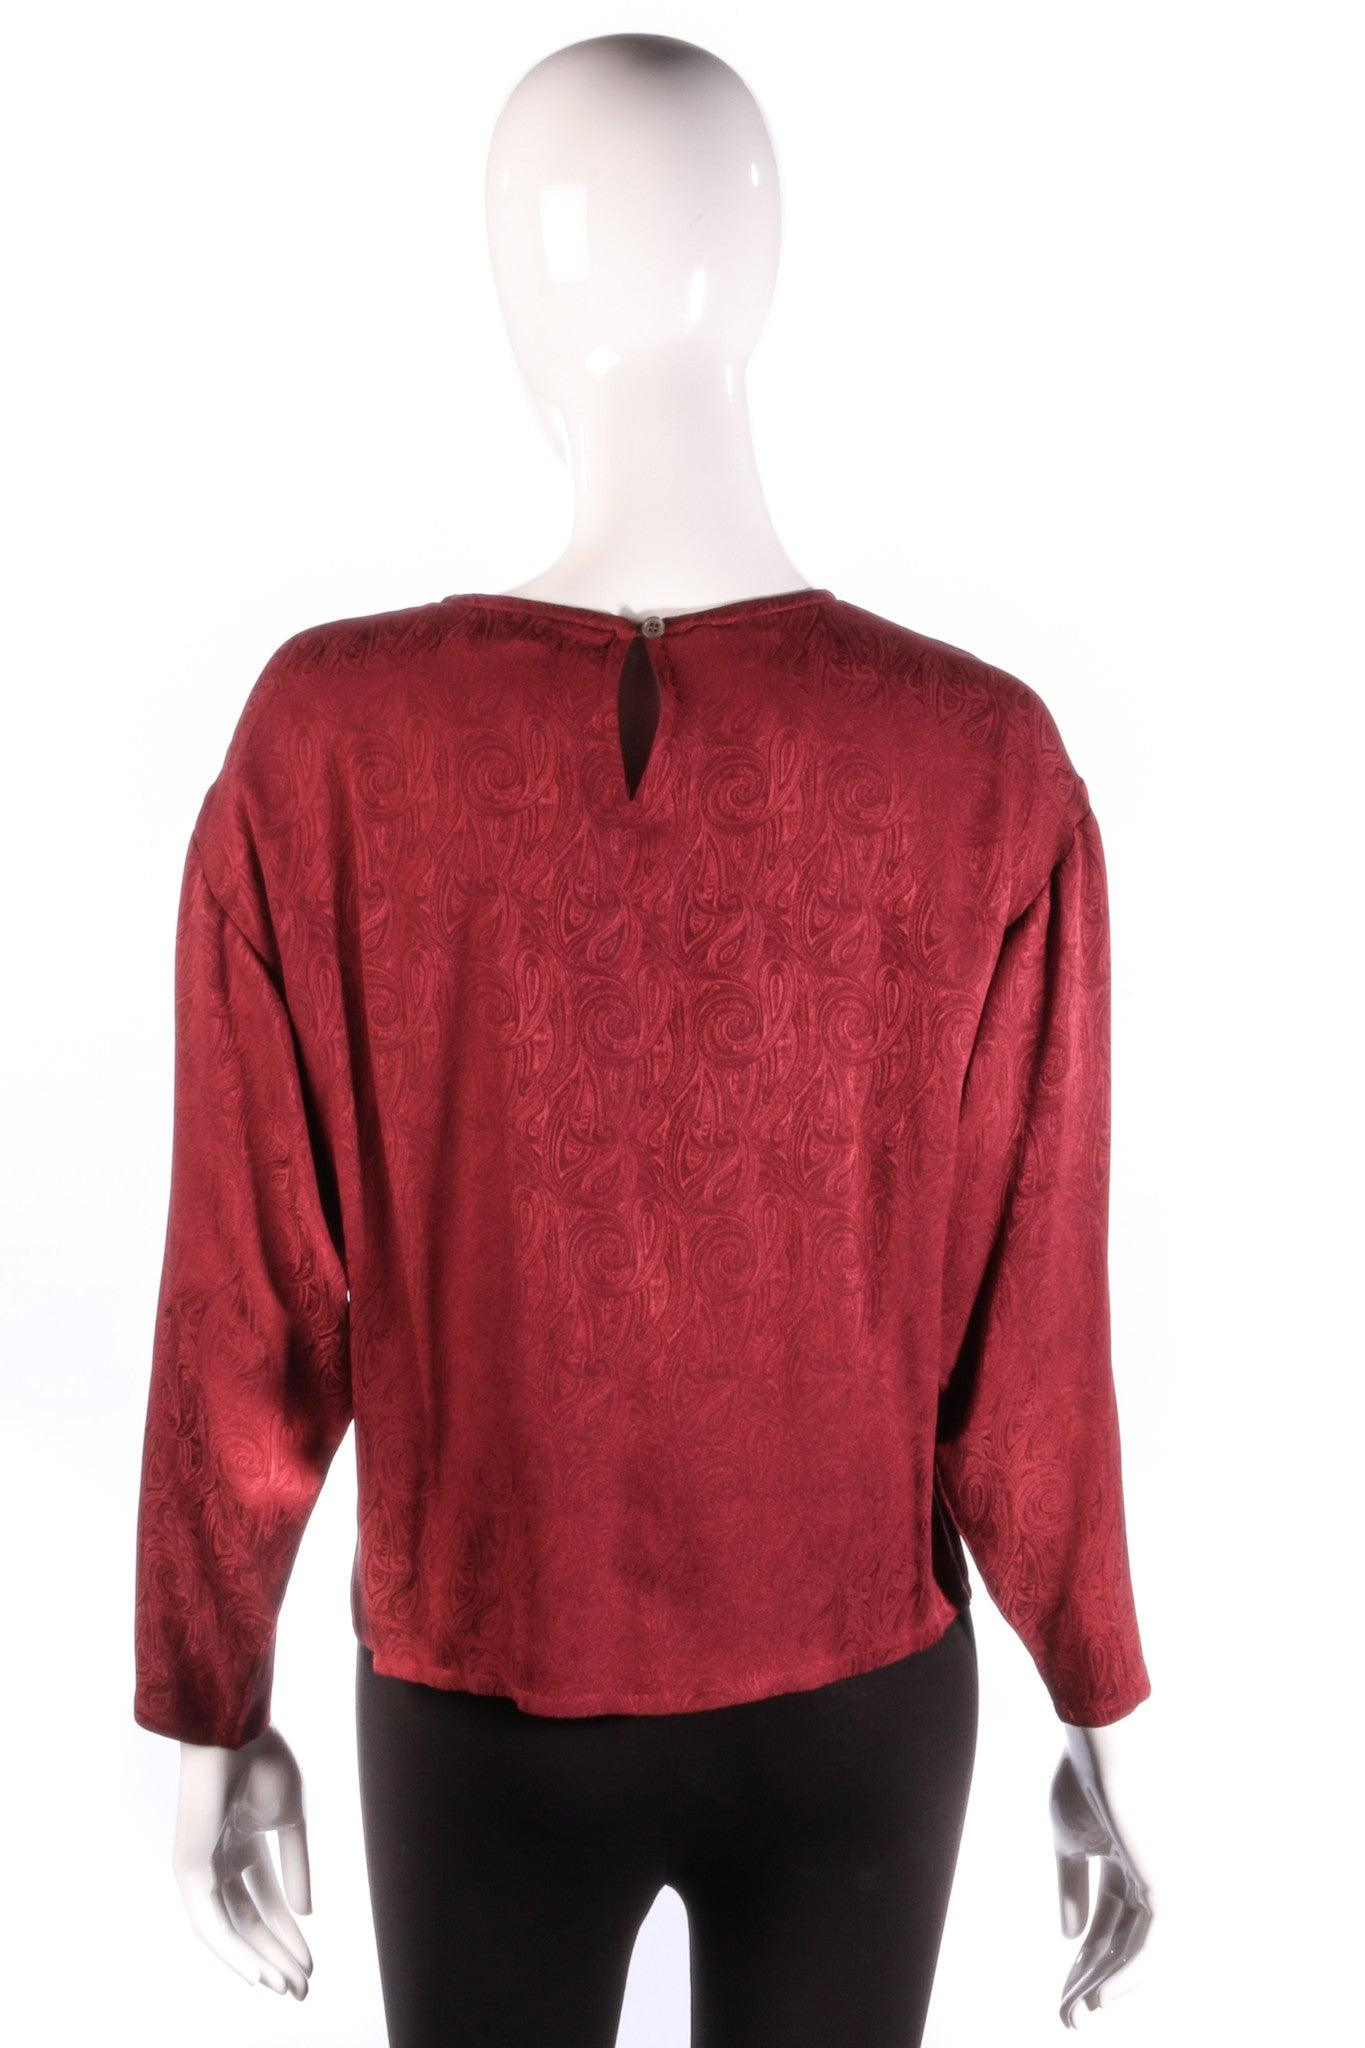 Austin Reed Designer Studio Silk Blouse Dark Red Uk Size 12 Ava Iva Austin Reed Designer Studio Silk Blouse Dark Red Uk Size 12 22 00 Gbp 12 Red Silk 22 00 Size 12 Color Red Material Silk Sku Ss0616500 Fcr20 Quantity Share View Full